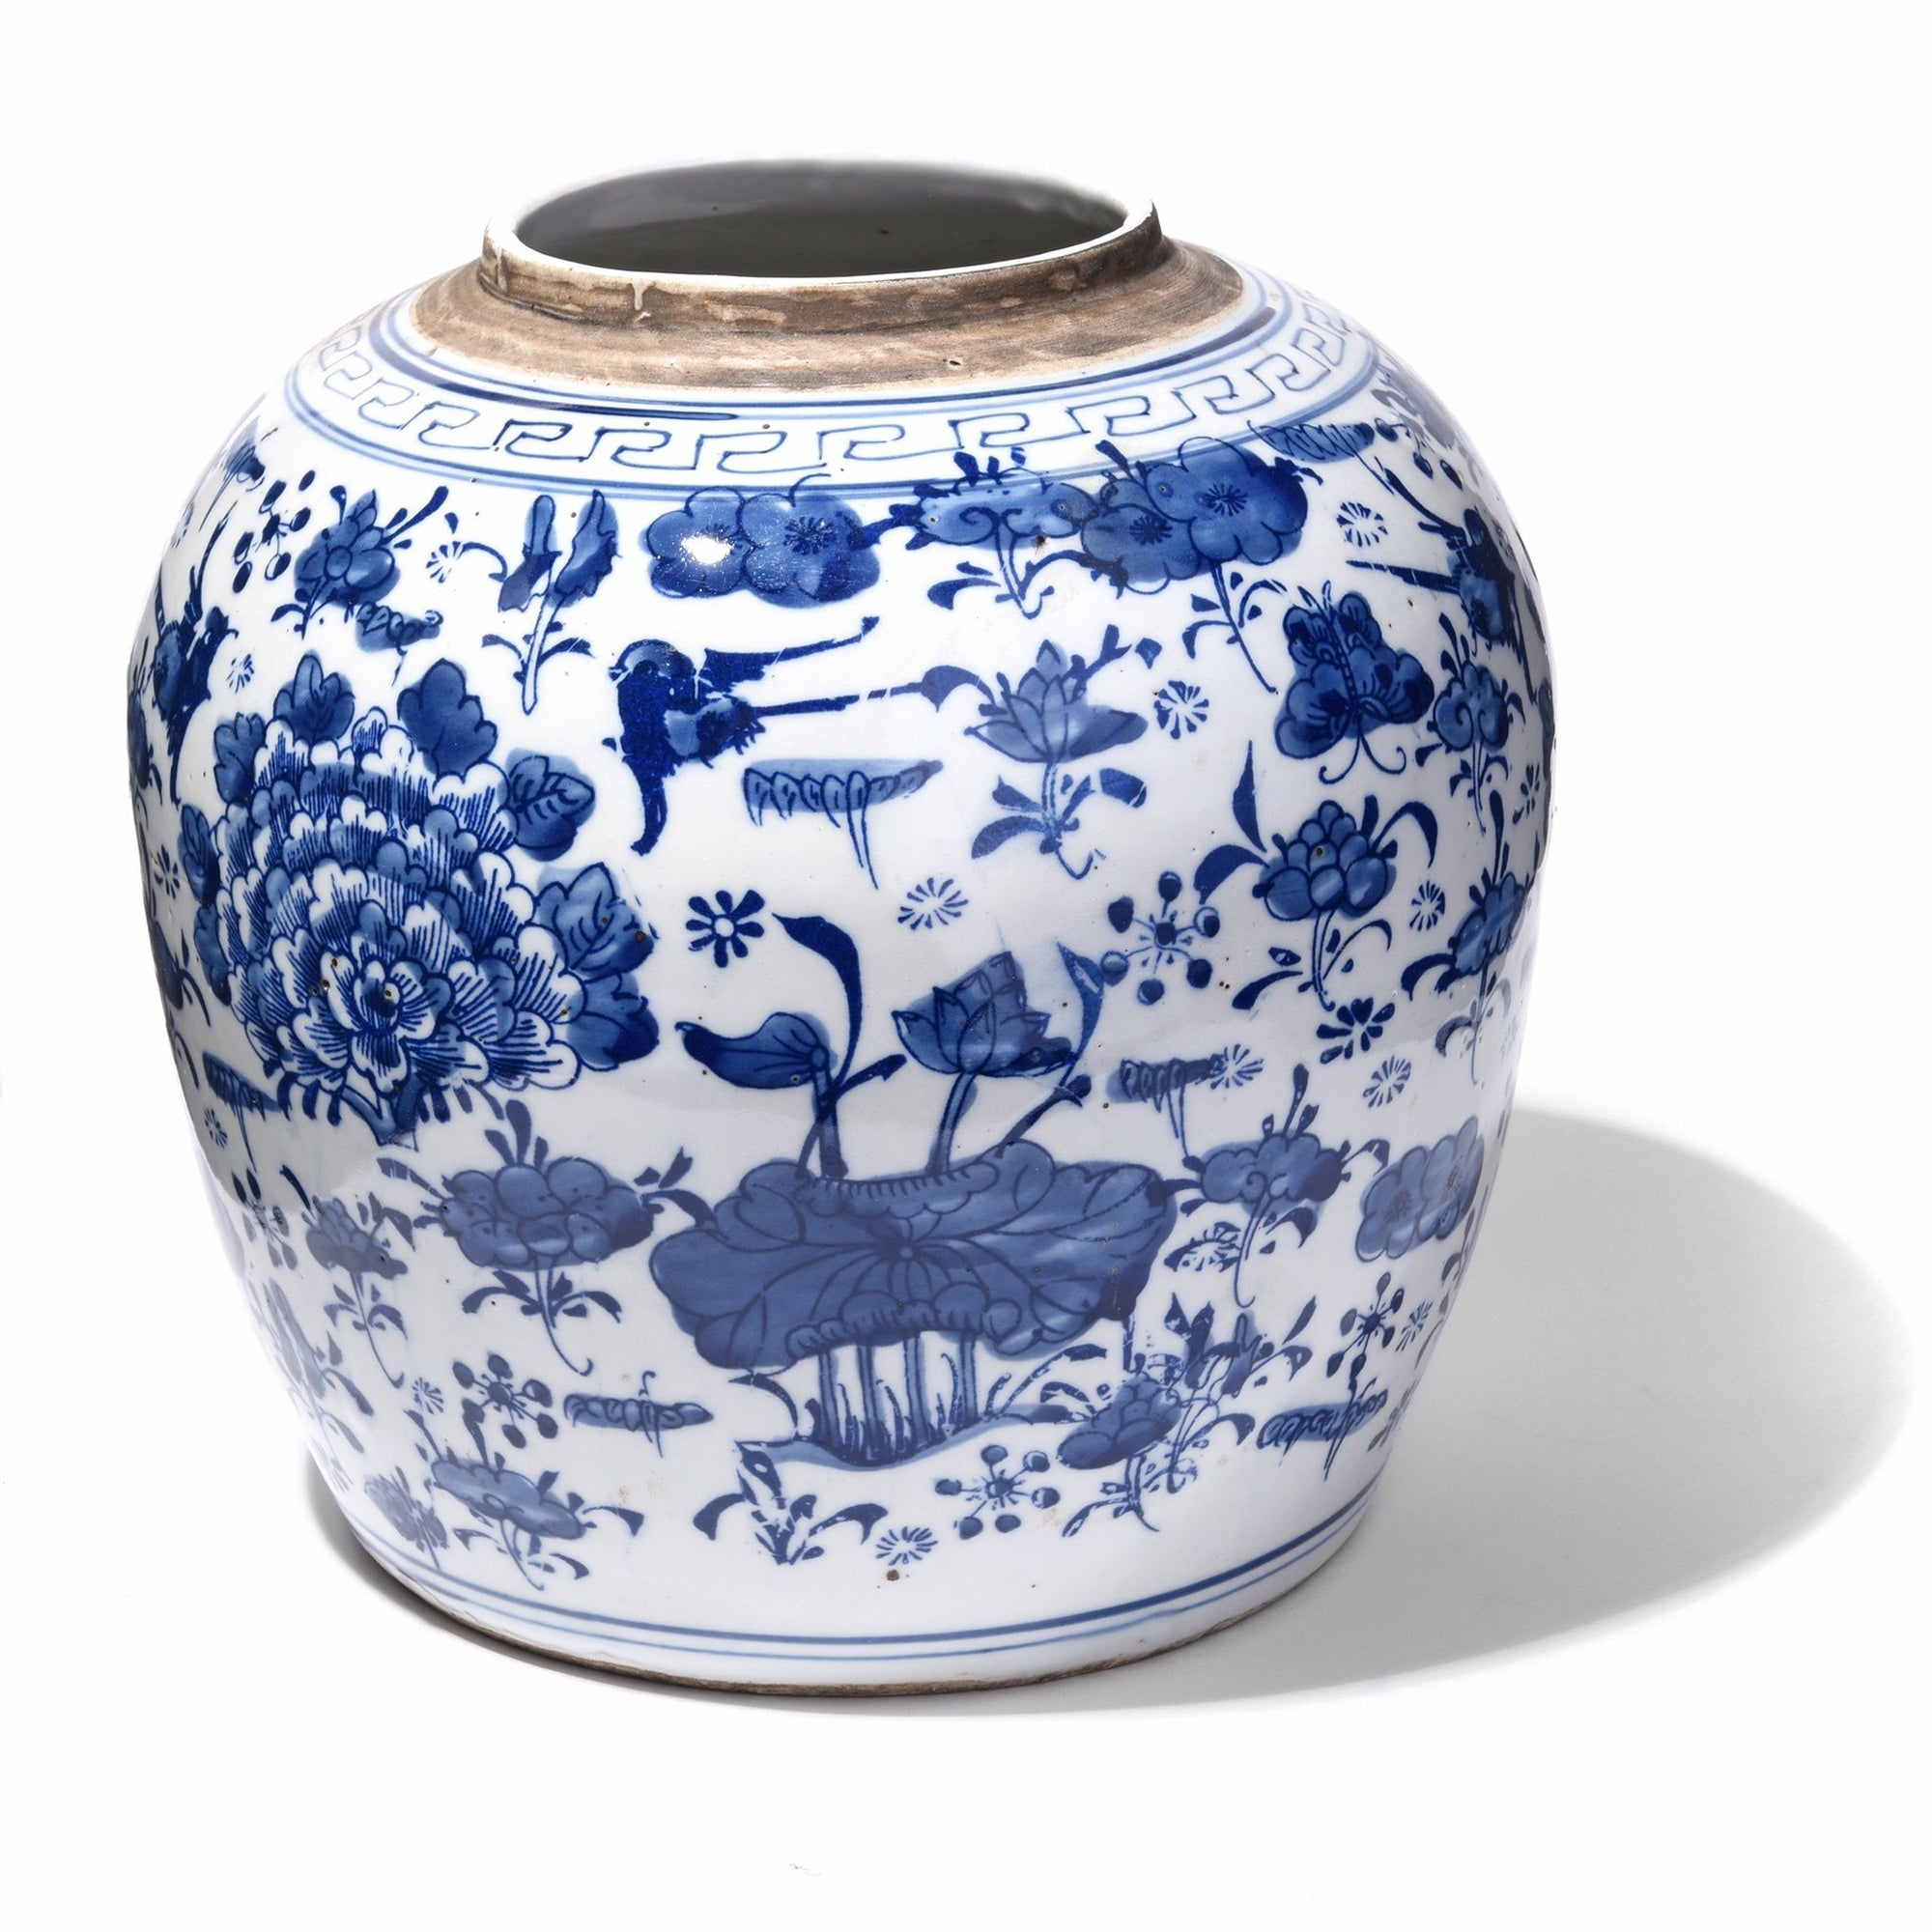 Blue & White Porcelain Ginger Jar - Peony & Butterfly Design | Indigo Antiques